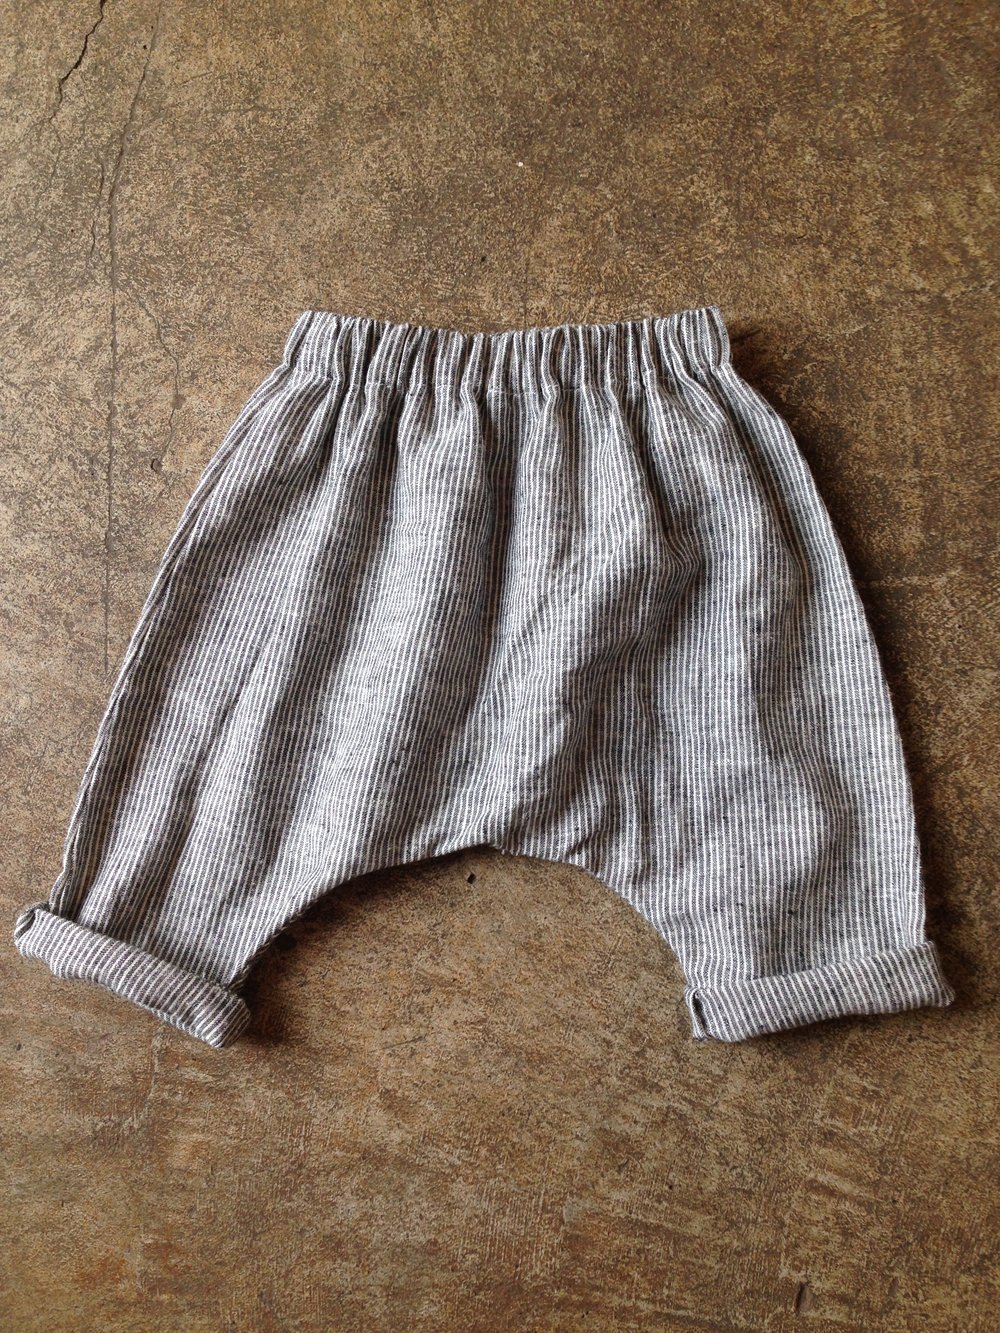 Harem Pants in hemp/organic cotton ticking